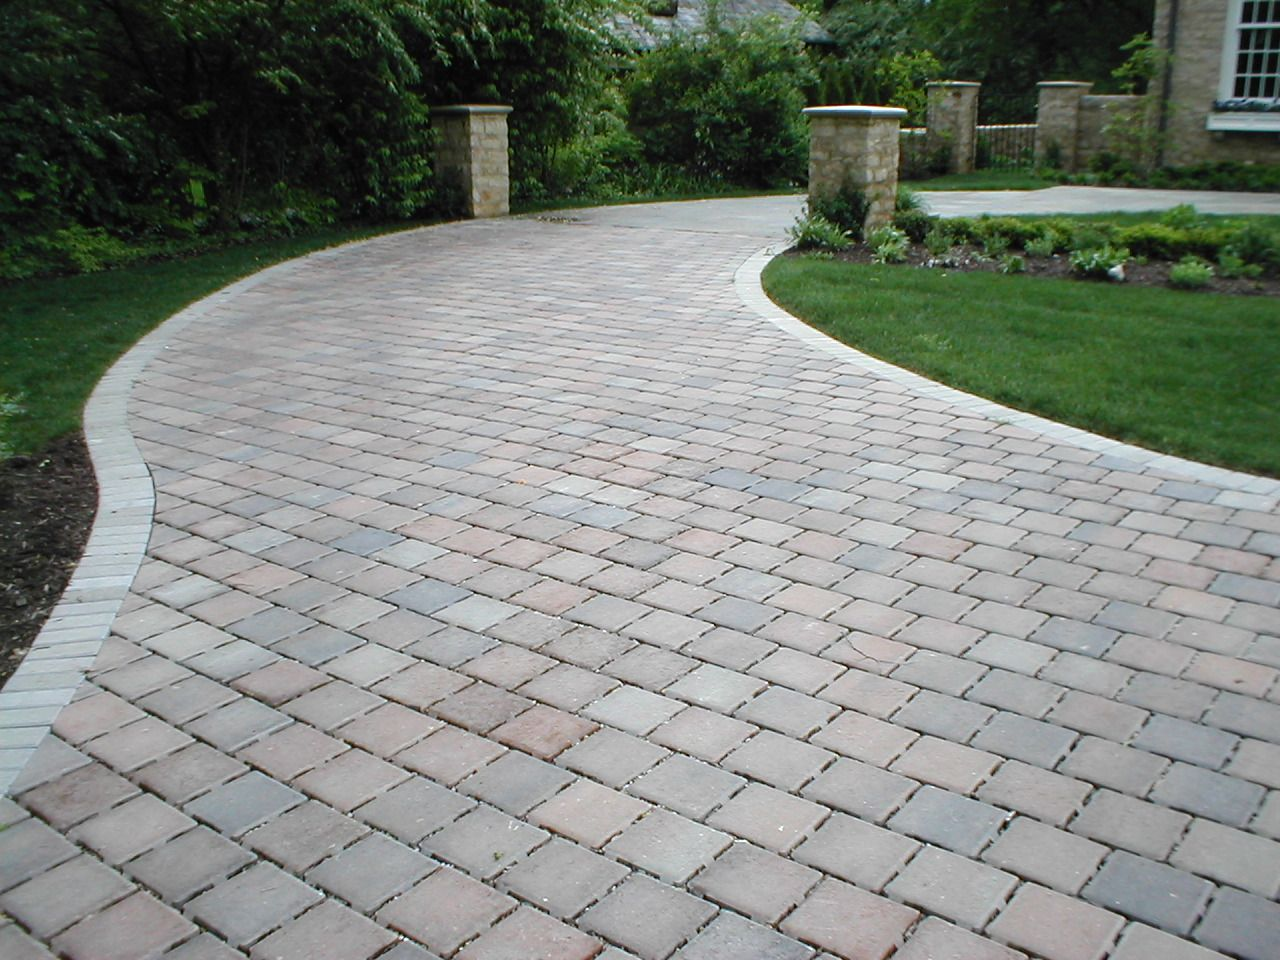 We are one of the local driveway specialists working all across